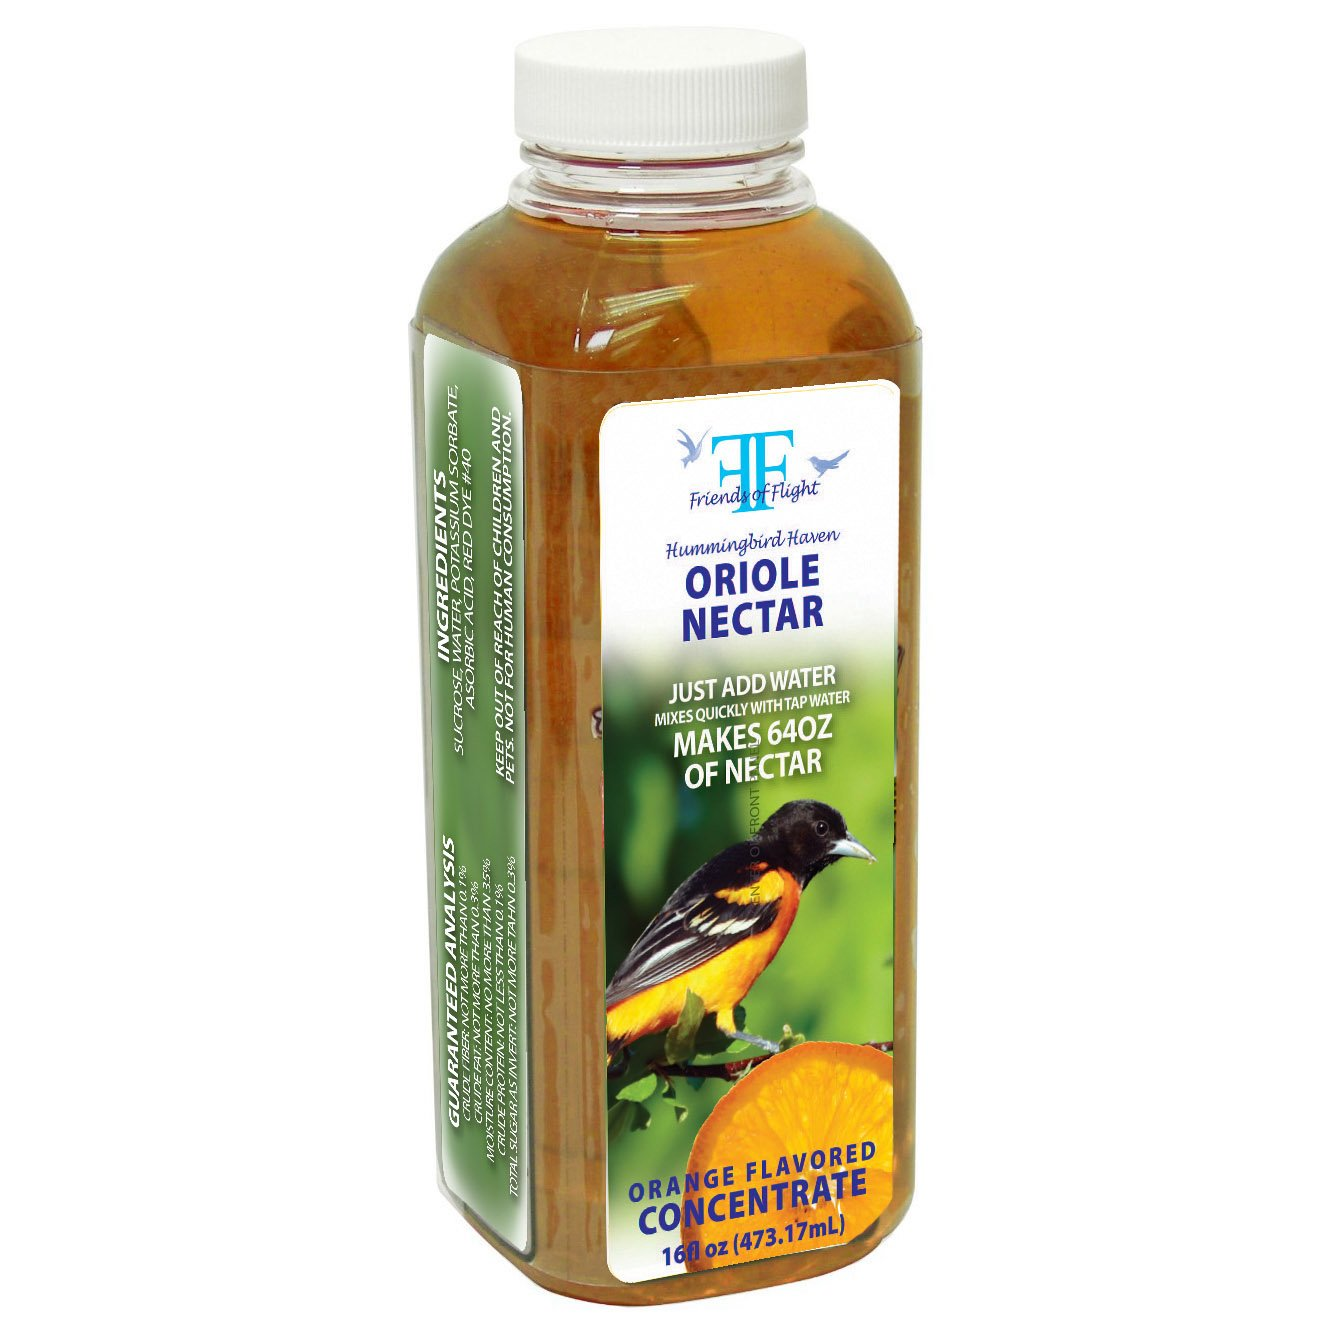 Friends Of Flight Haven 028982 Liquid Oriole Nectar Concentrate, Orange, 16-Ounce